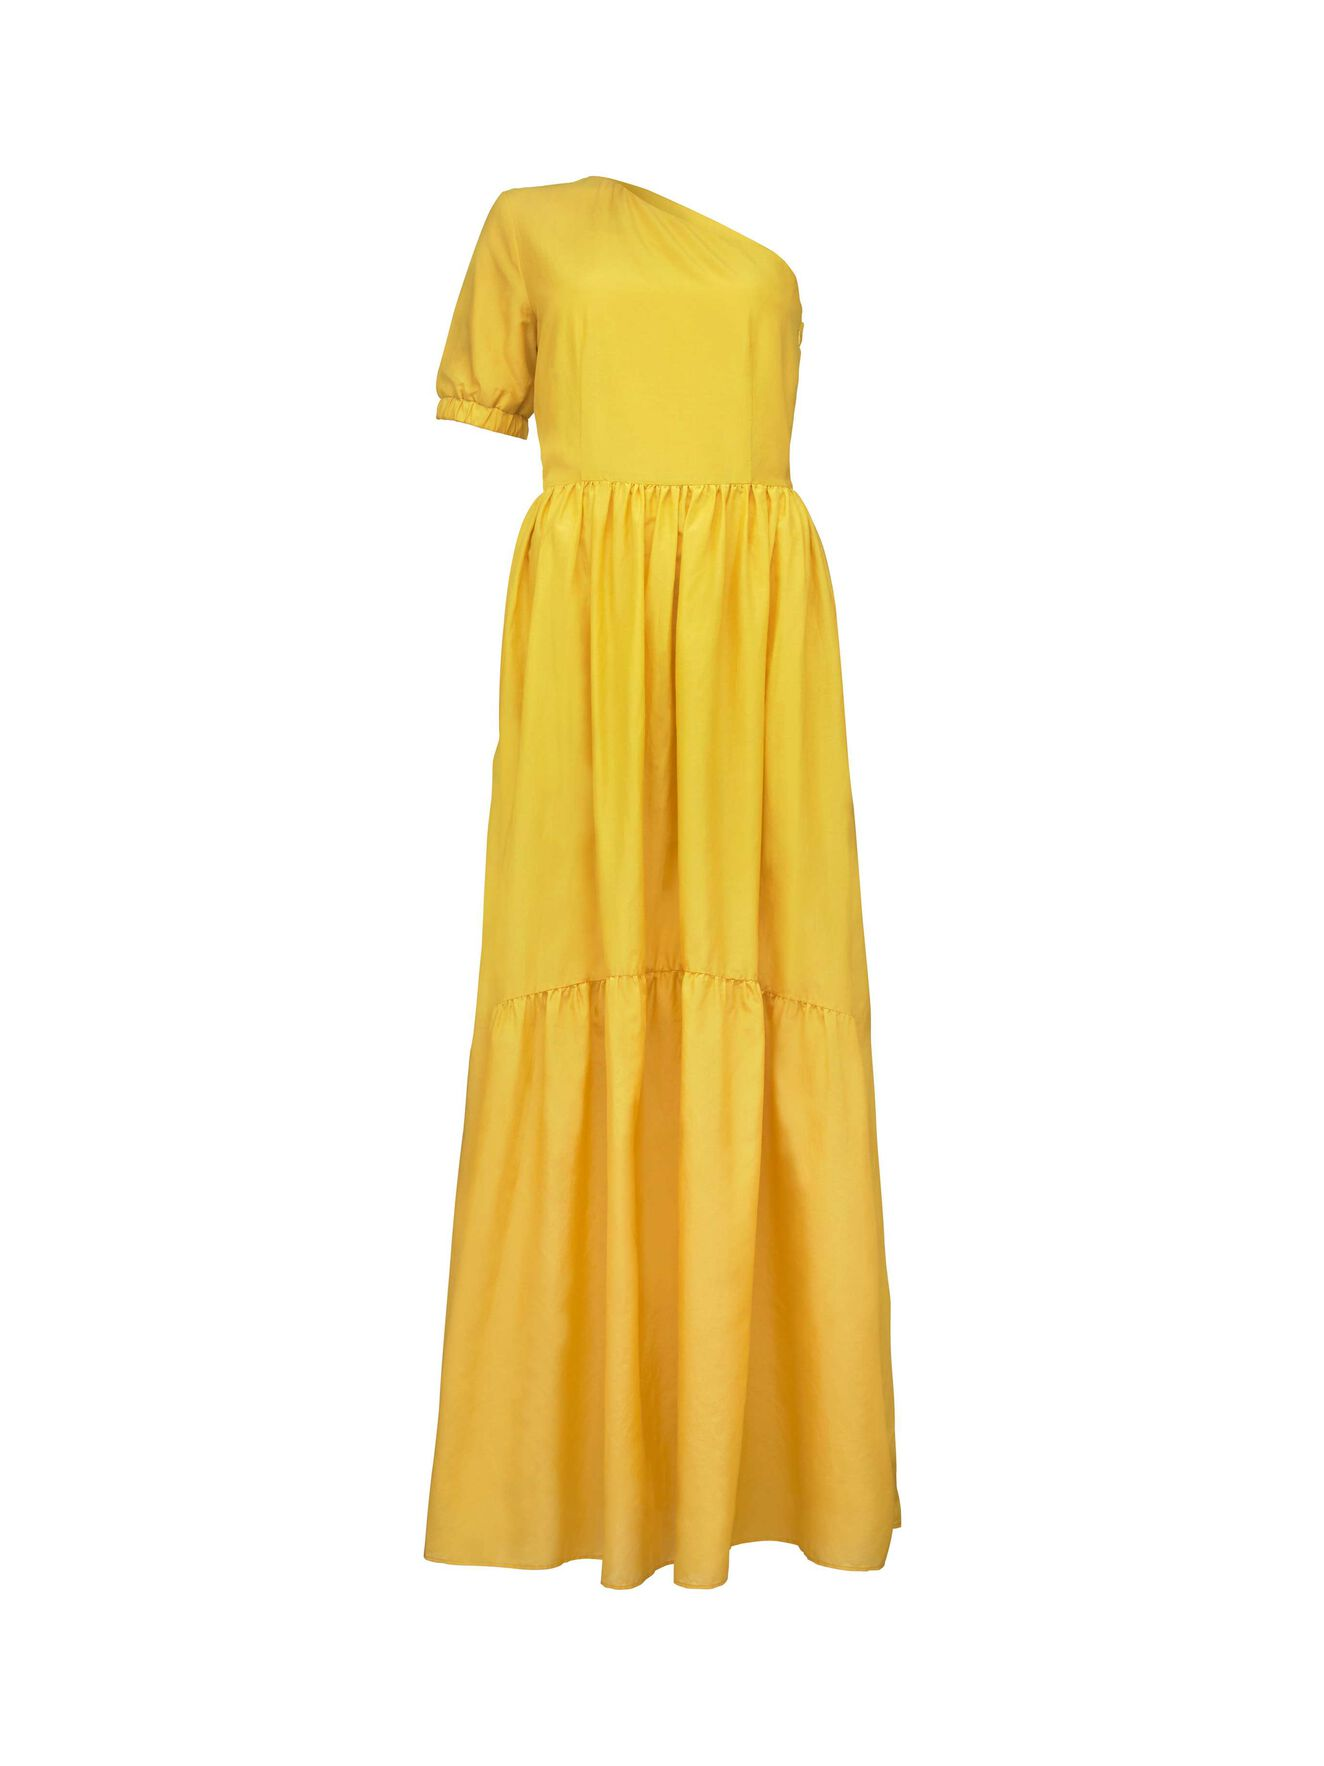 ROBE ABRI in Yellow from Tiger of Sweden